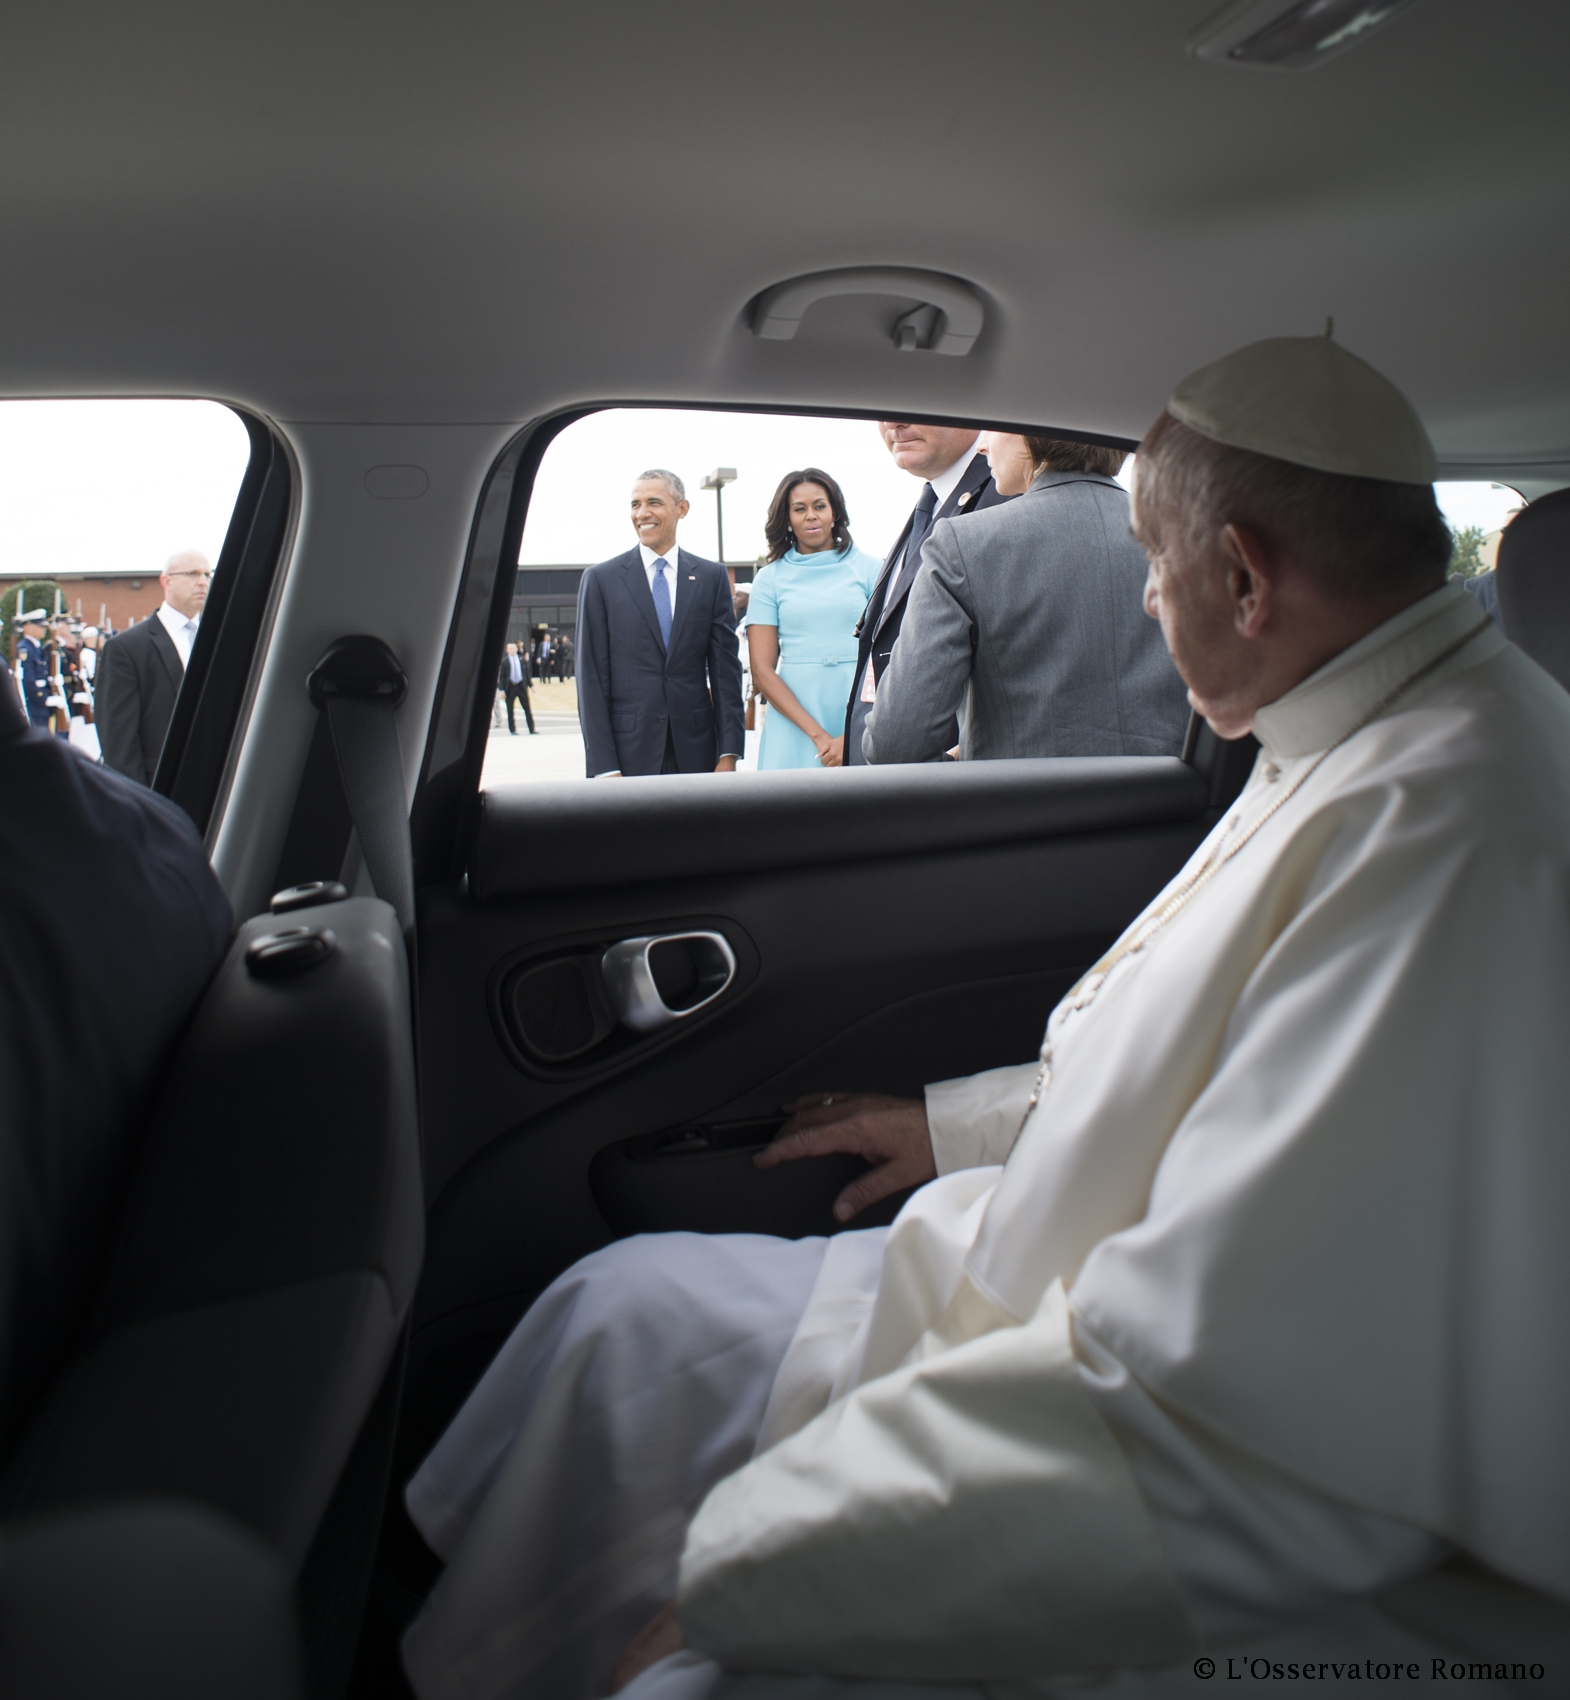 Pope Francis' sitting in a Fiat 500 L ready to leave Joint Base Andrews near Washington D.C.